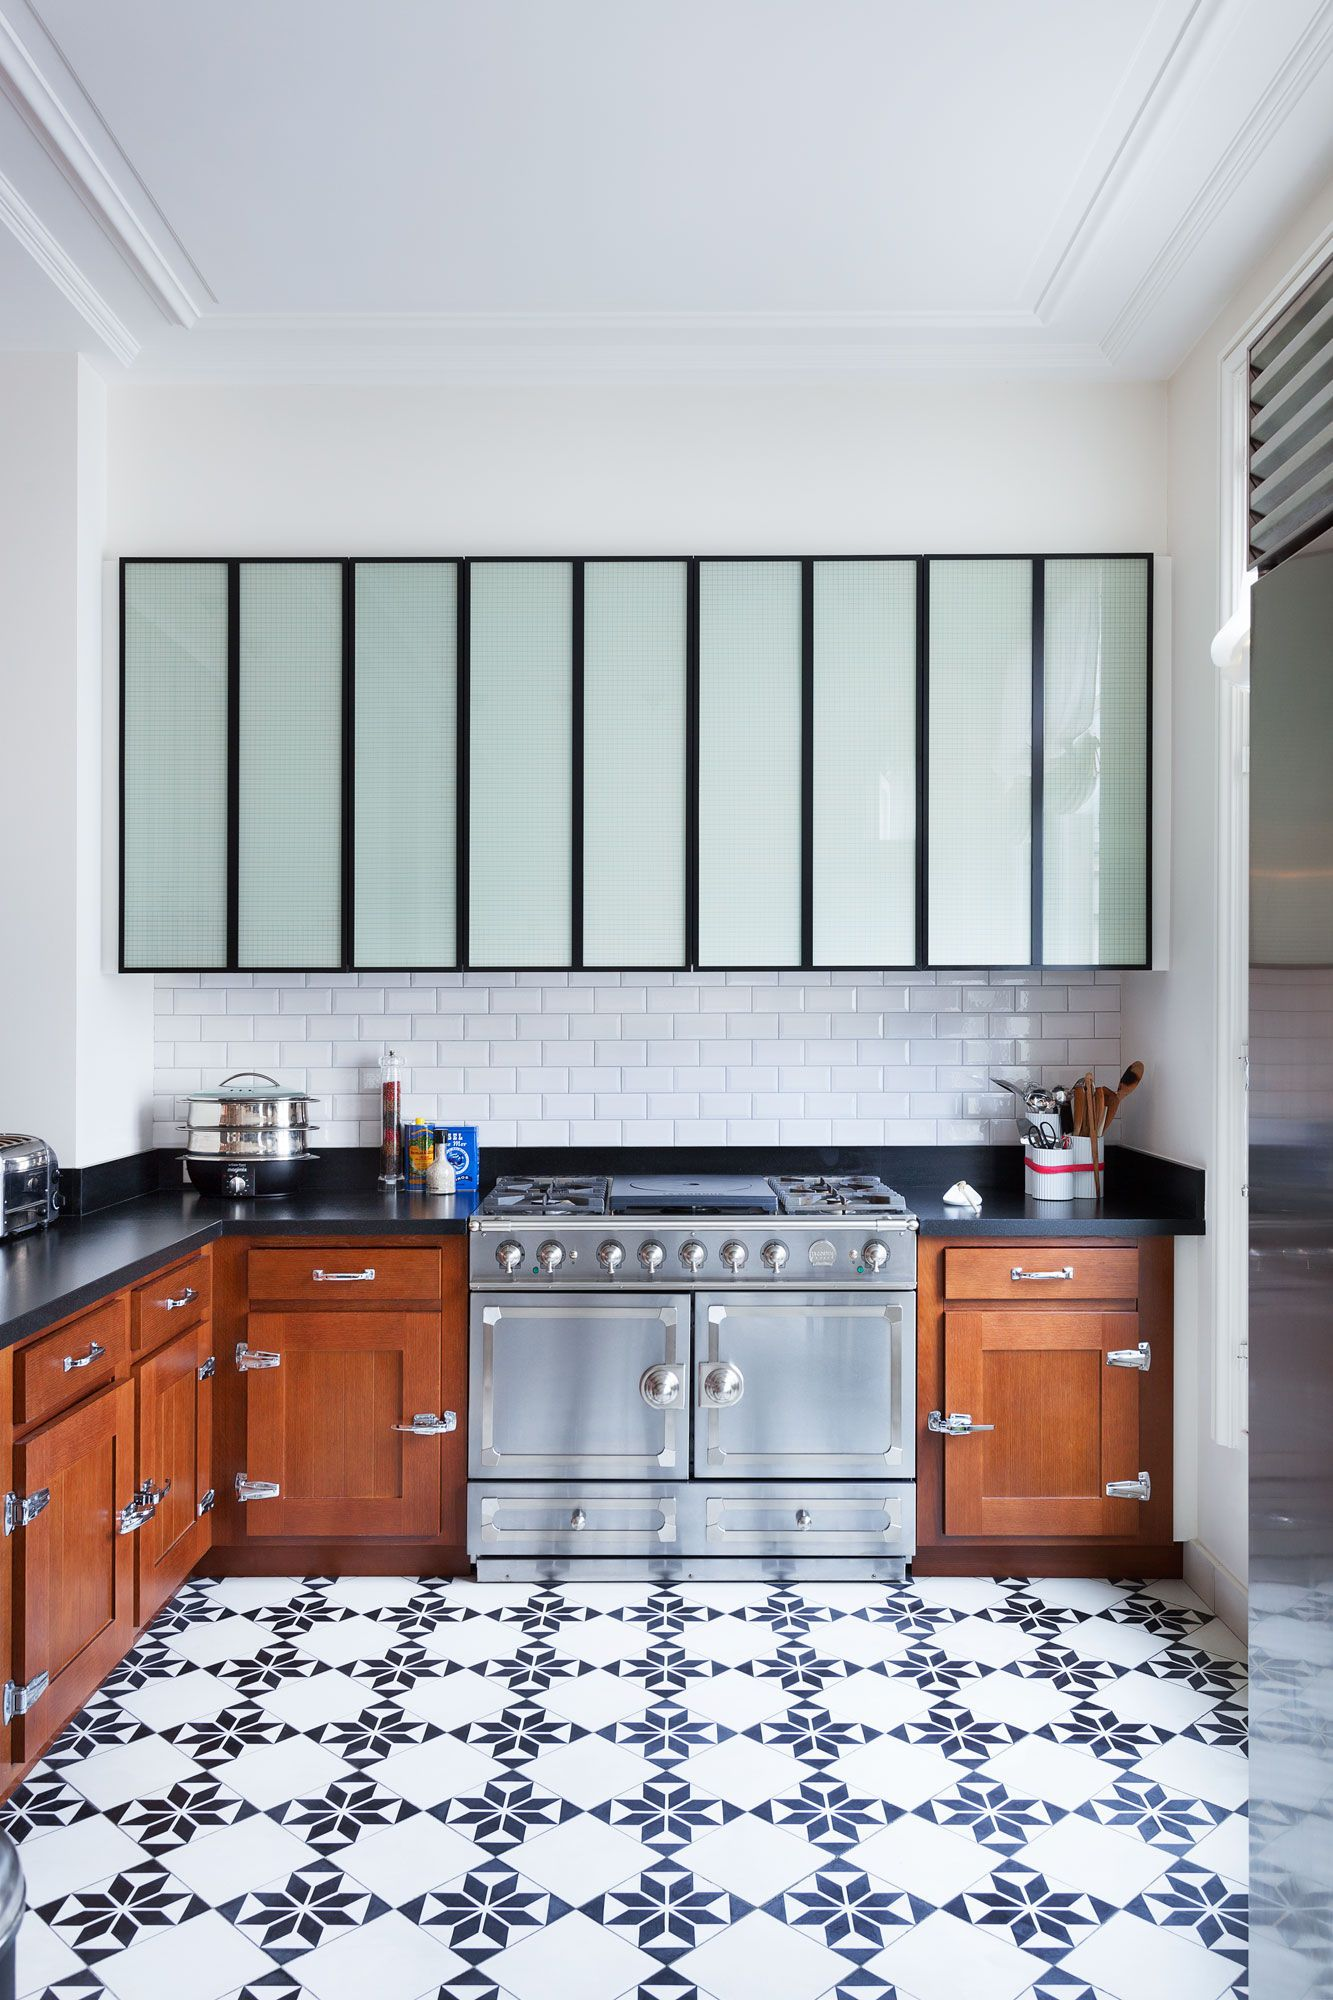 A Parisian kitchen with patterned floor tiles | Kitchens | Pinterest ...